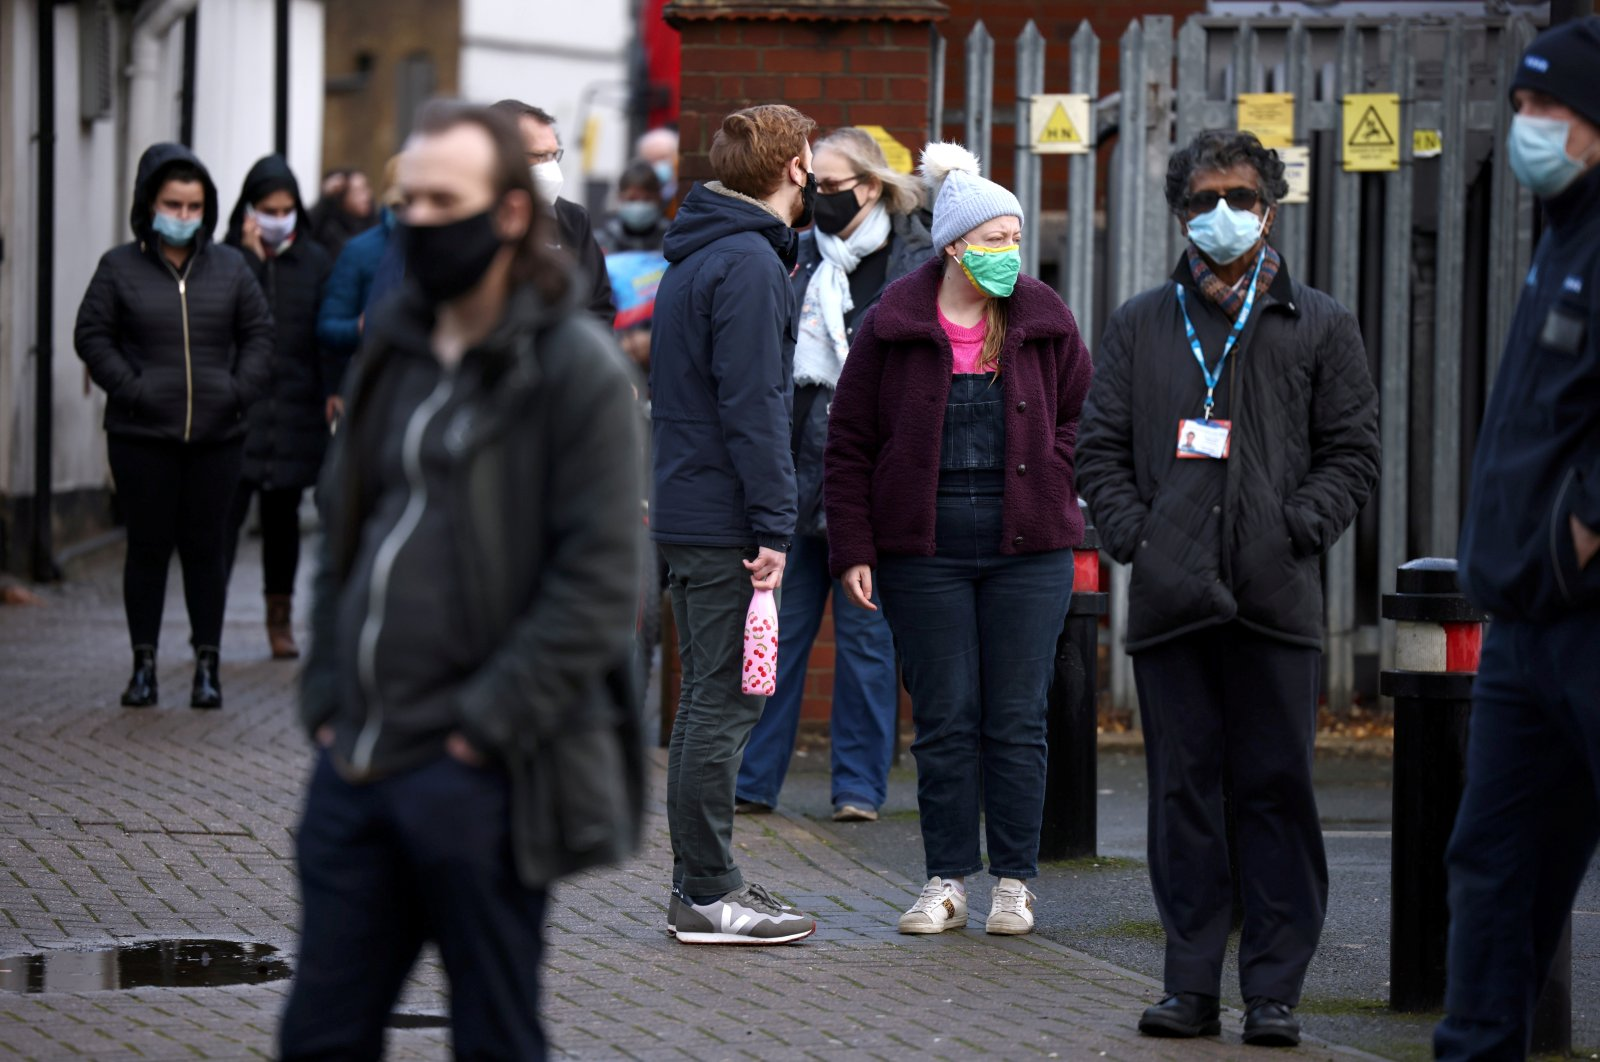 People queue at a coronavirus testing site after a new variant of SARS-CoV-2 originating from South Africa was discovered, in Ealing, West London, Britain, Feb. 2, 2021. (Reuters Photo)